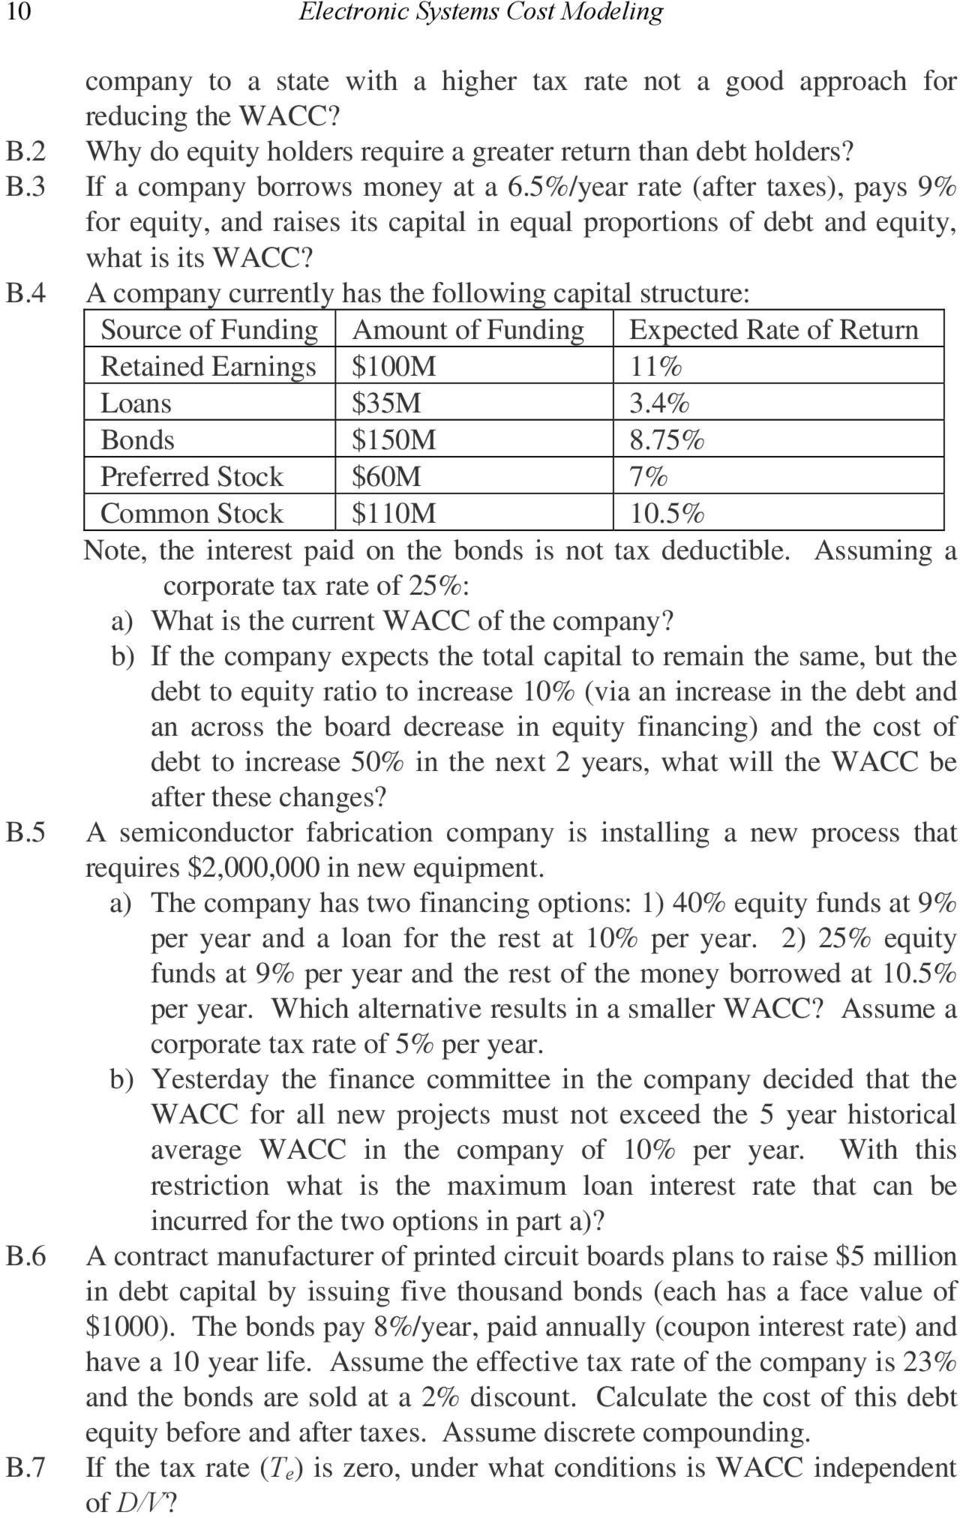 4 A company currently has the following capital structure: Source of Funding Amount of Funding Expected Rate of Return Retained Earnings $100M 11% Loans $35M 3.4% Bonds $150M 8.